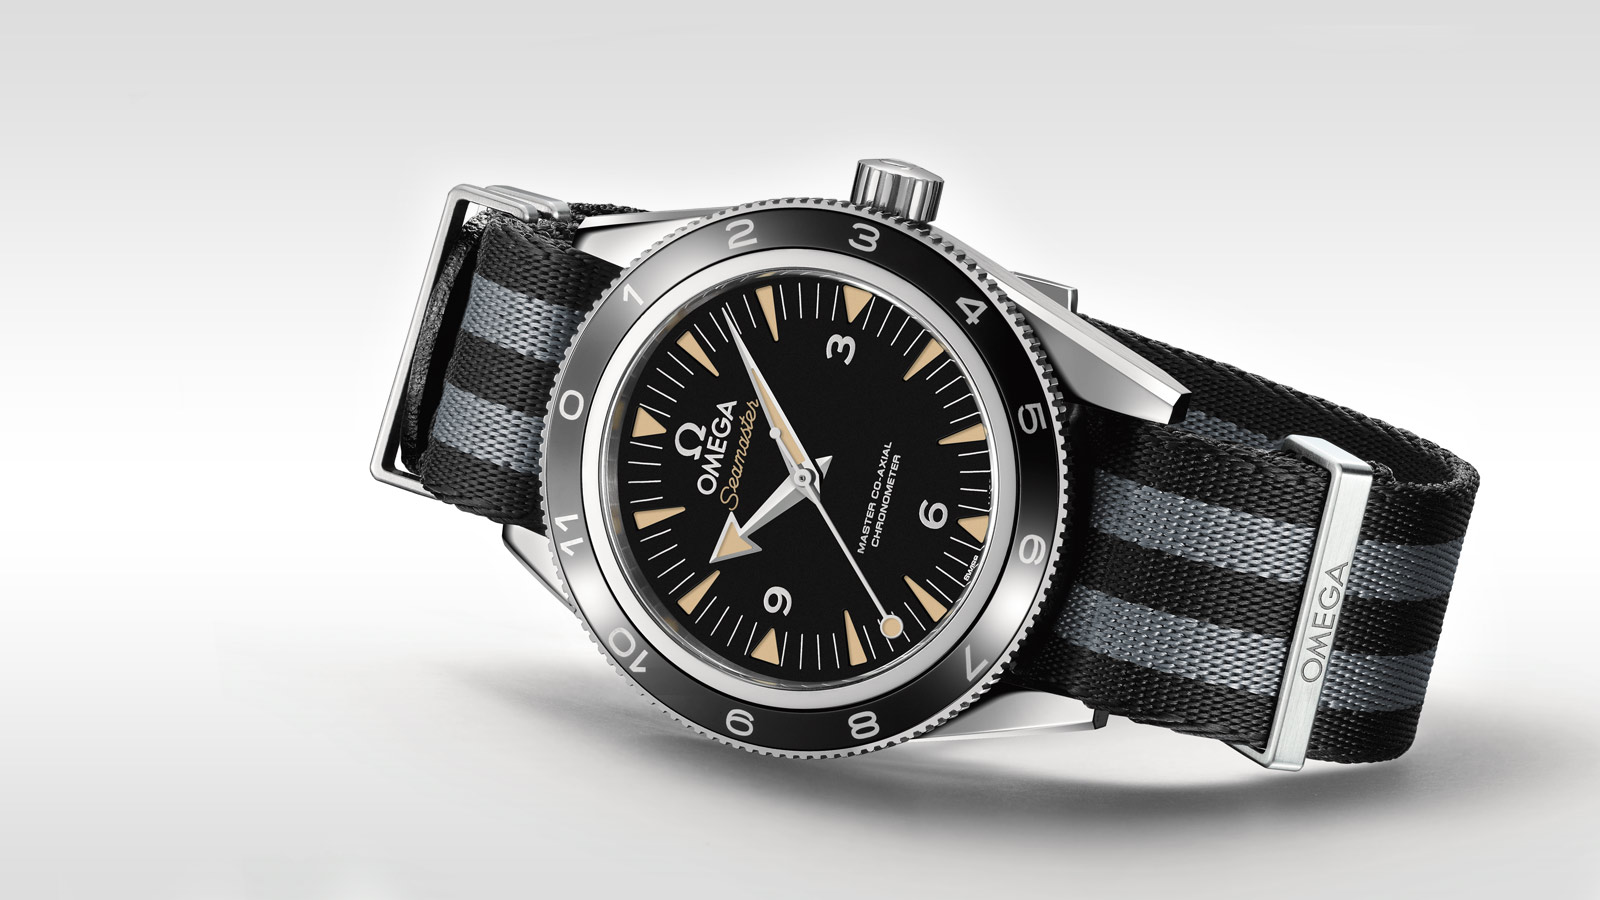 Seamaster Seamaster 300 Seamaster 300 Omega Master Co‑Axial 41 mm - 233.32.41.21.01.001 - View 5